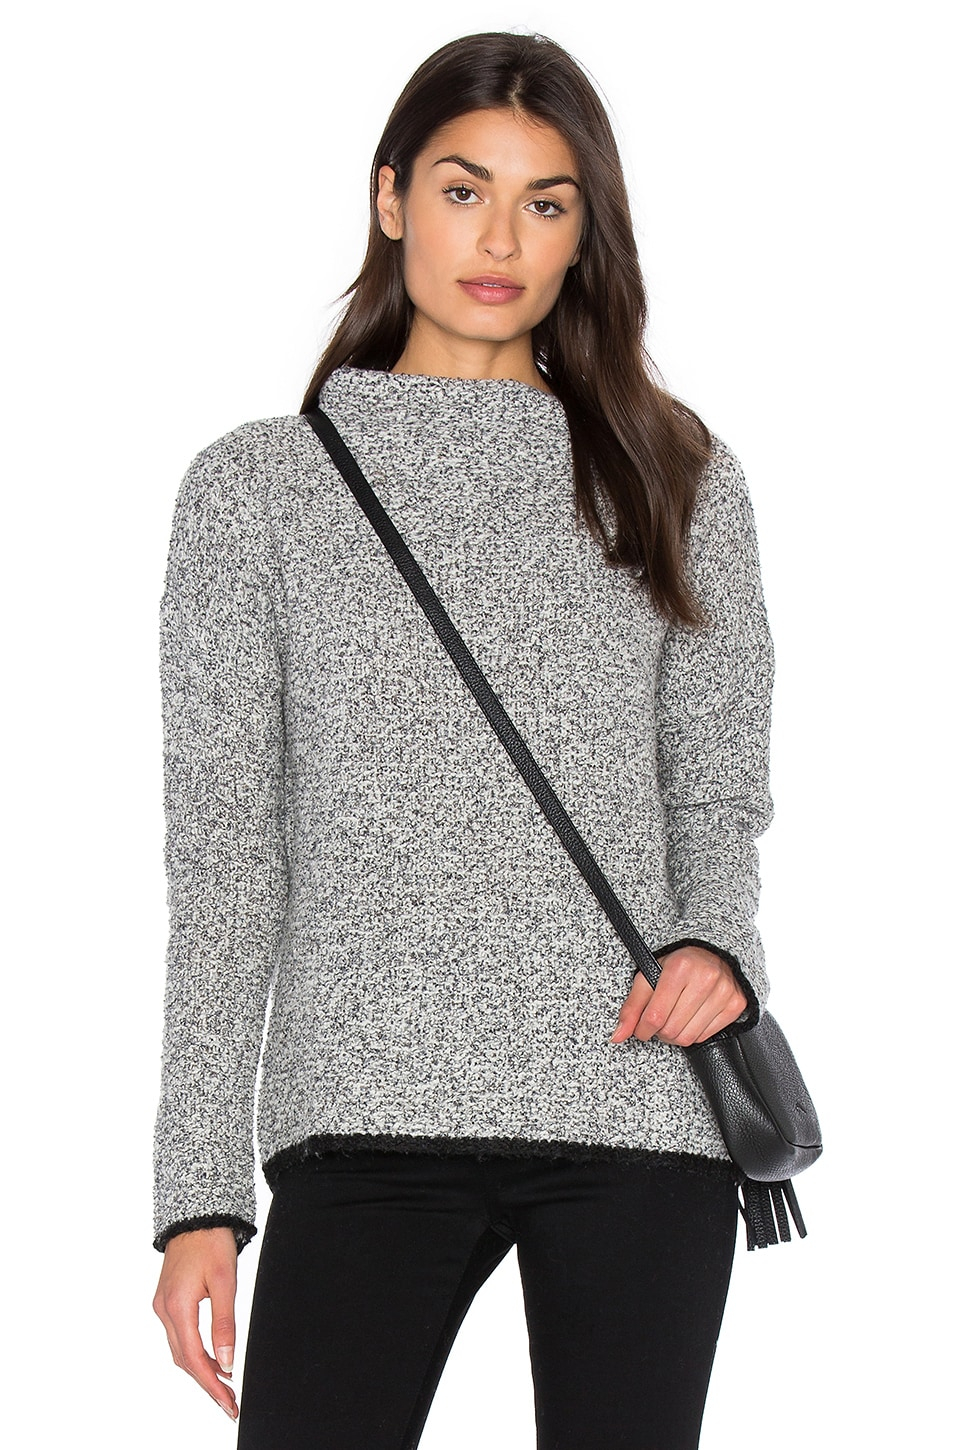 Boucle Sweater by White + Warren